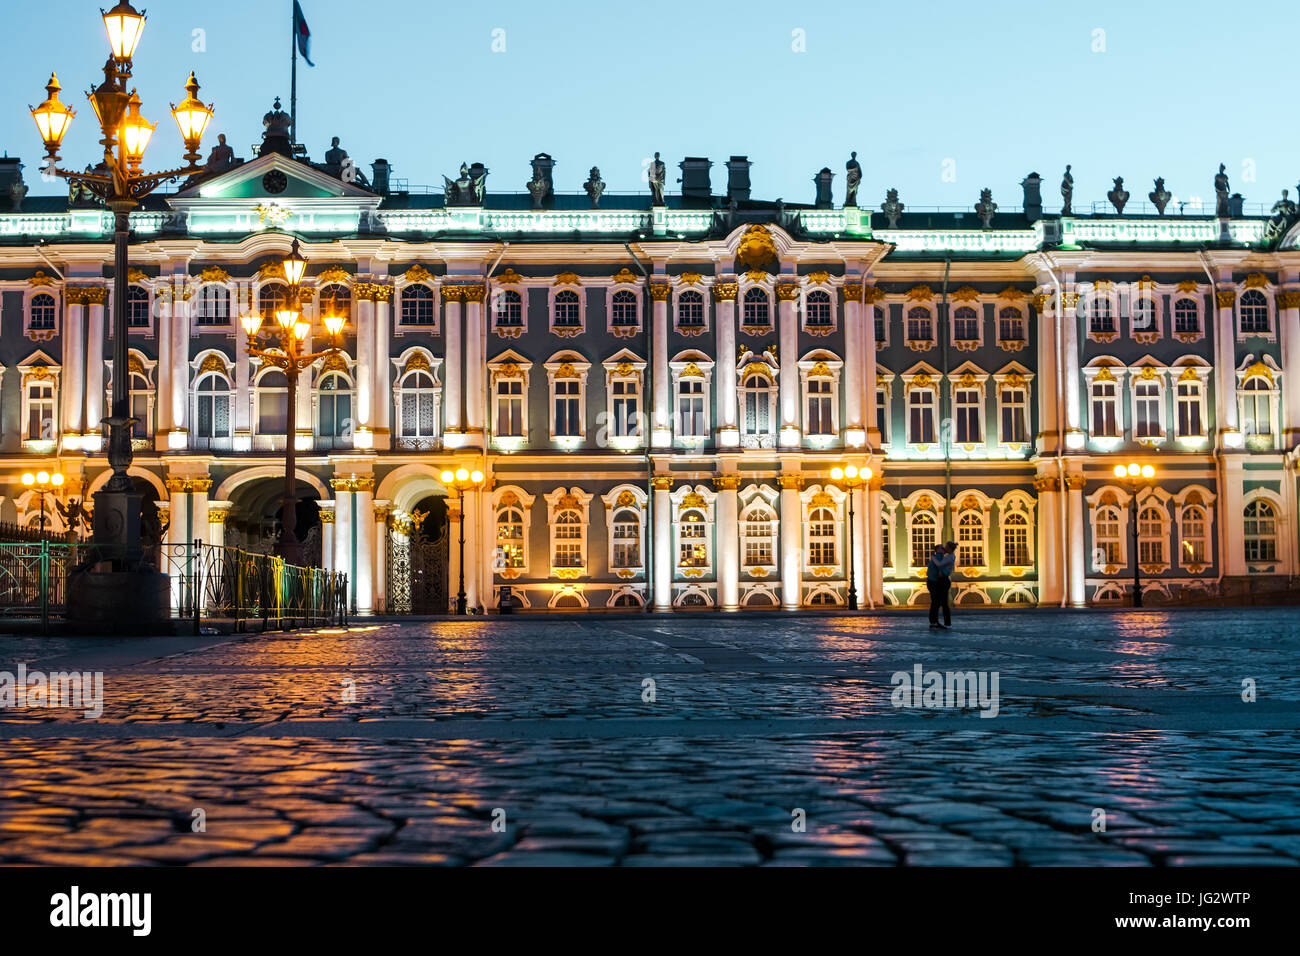 St. Petersburg's Winter Palace Stock Photo